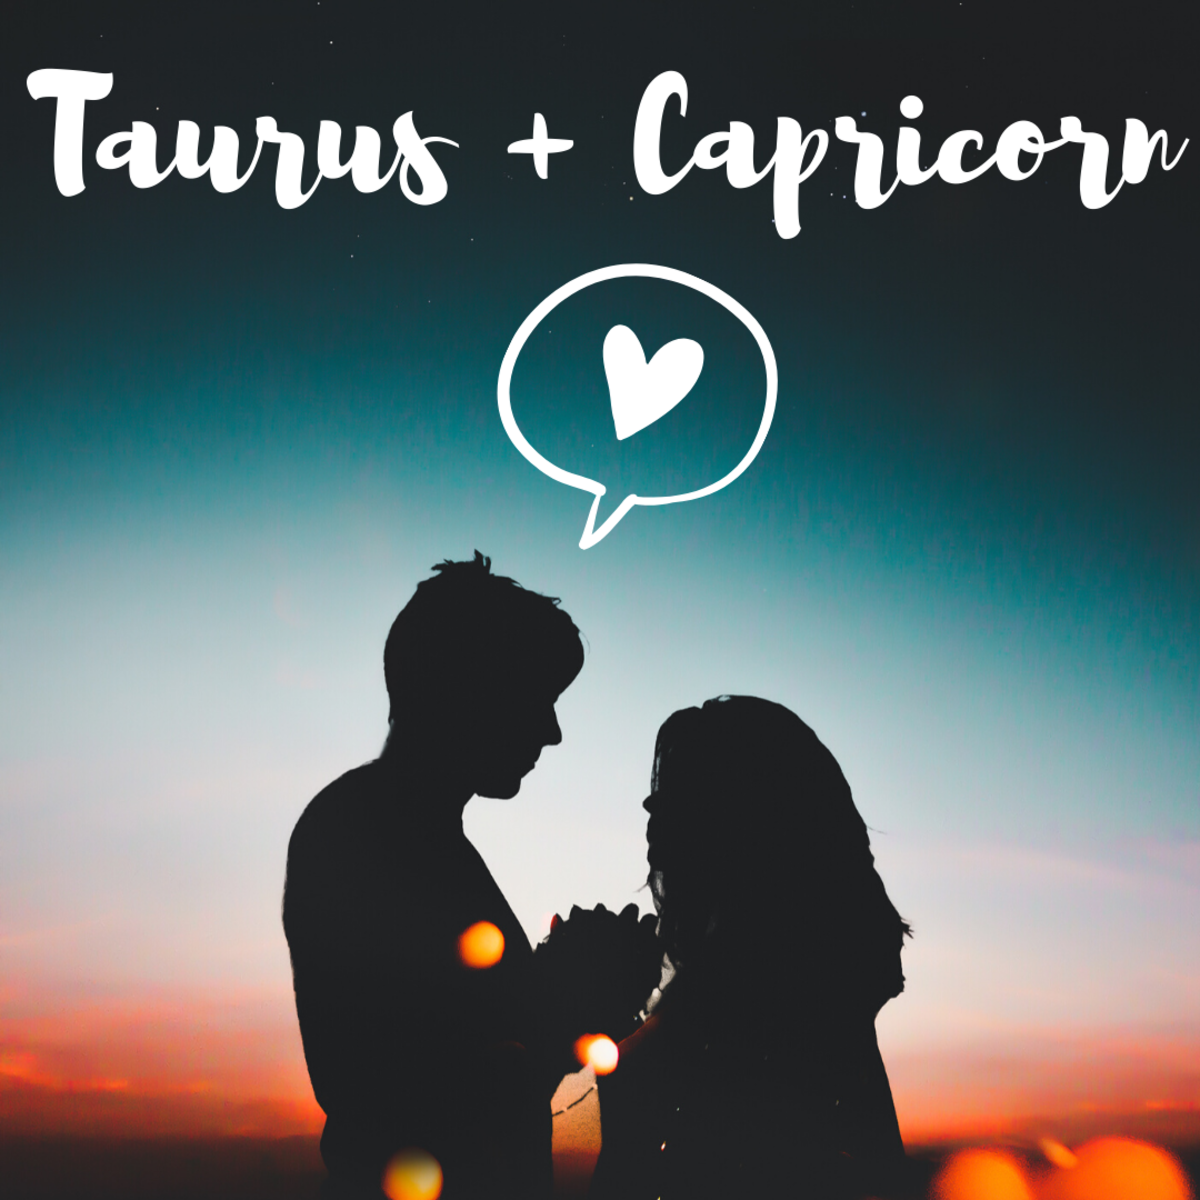 Why Are Taurus and Capricorn Attracted to Each Other?